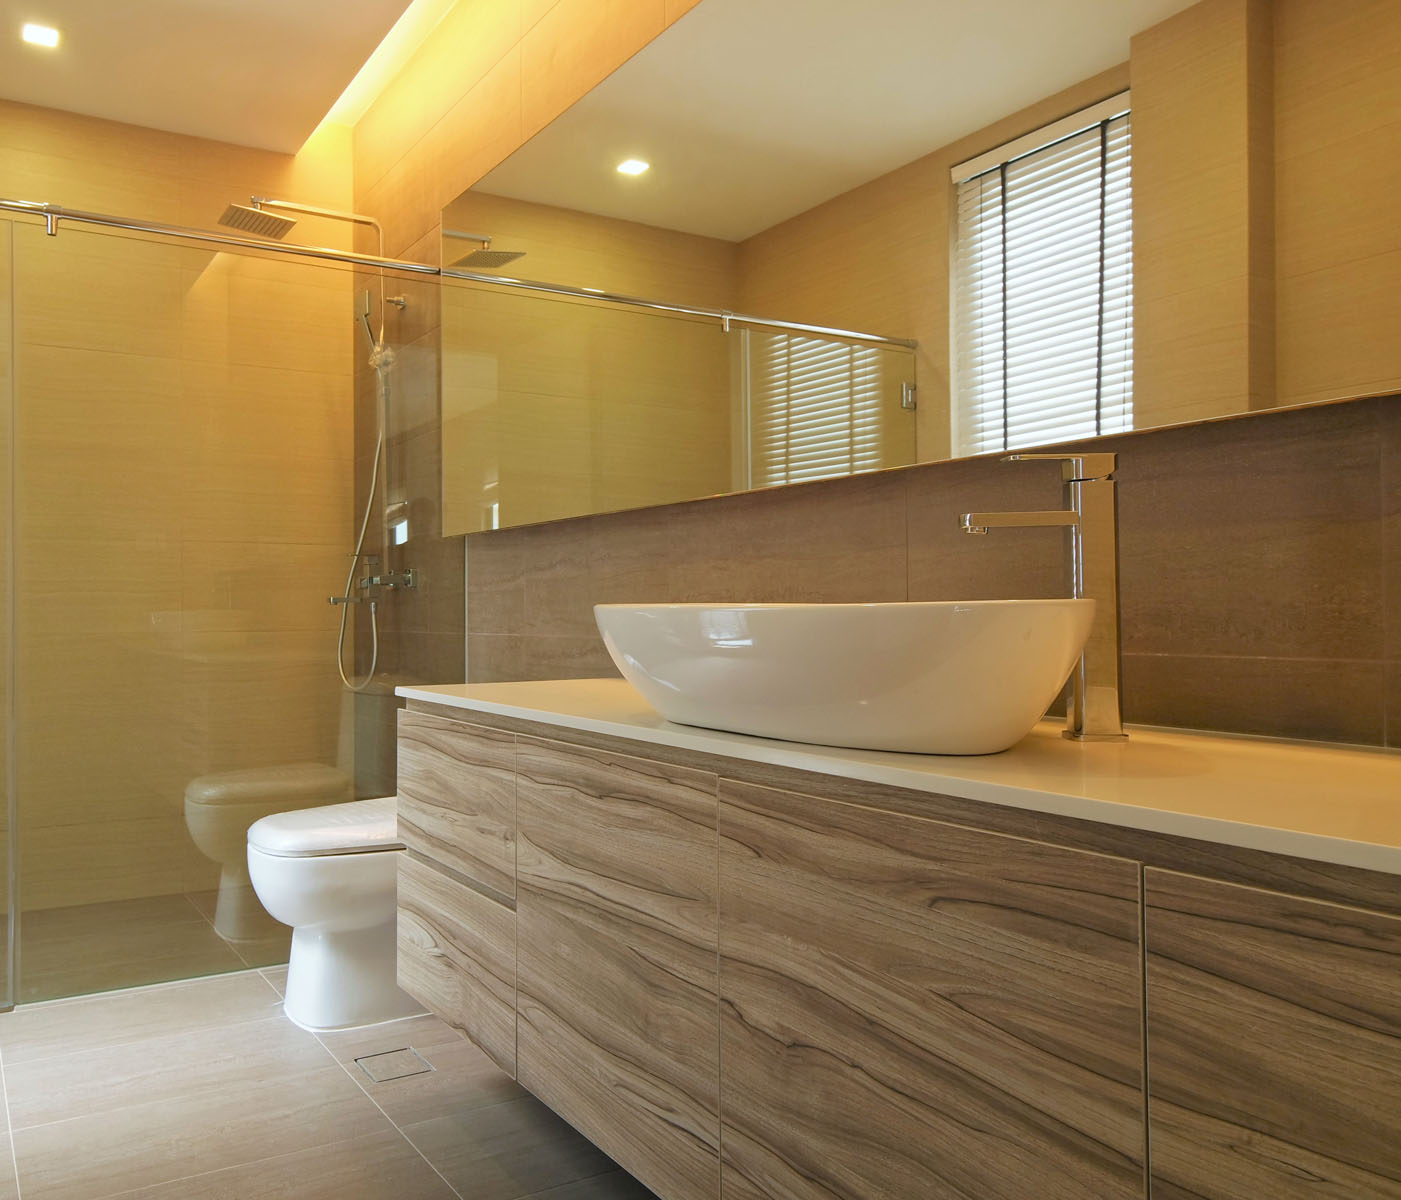 Simple bathroom design ideas